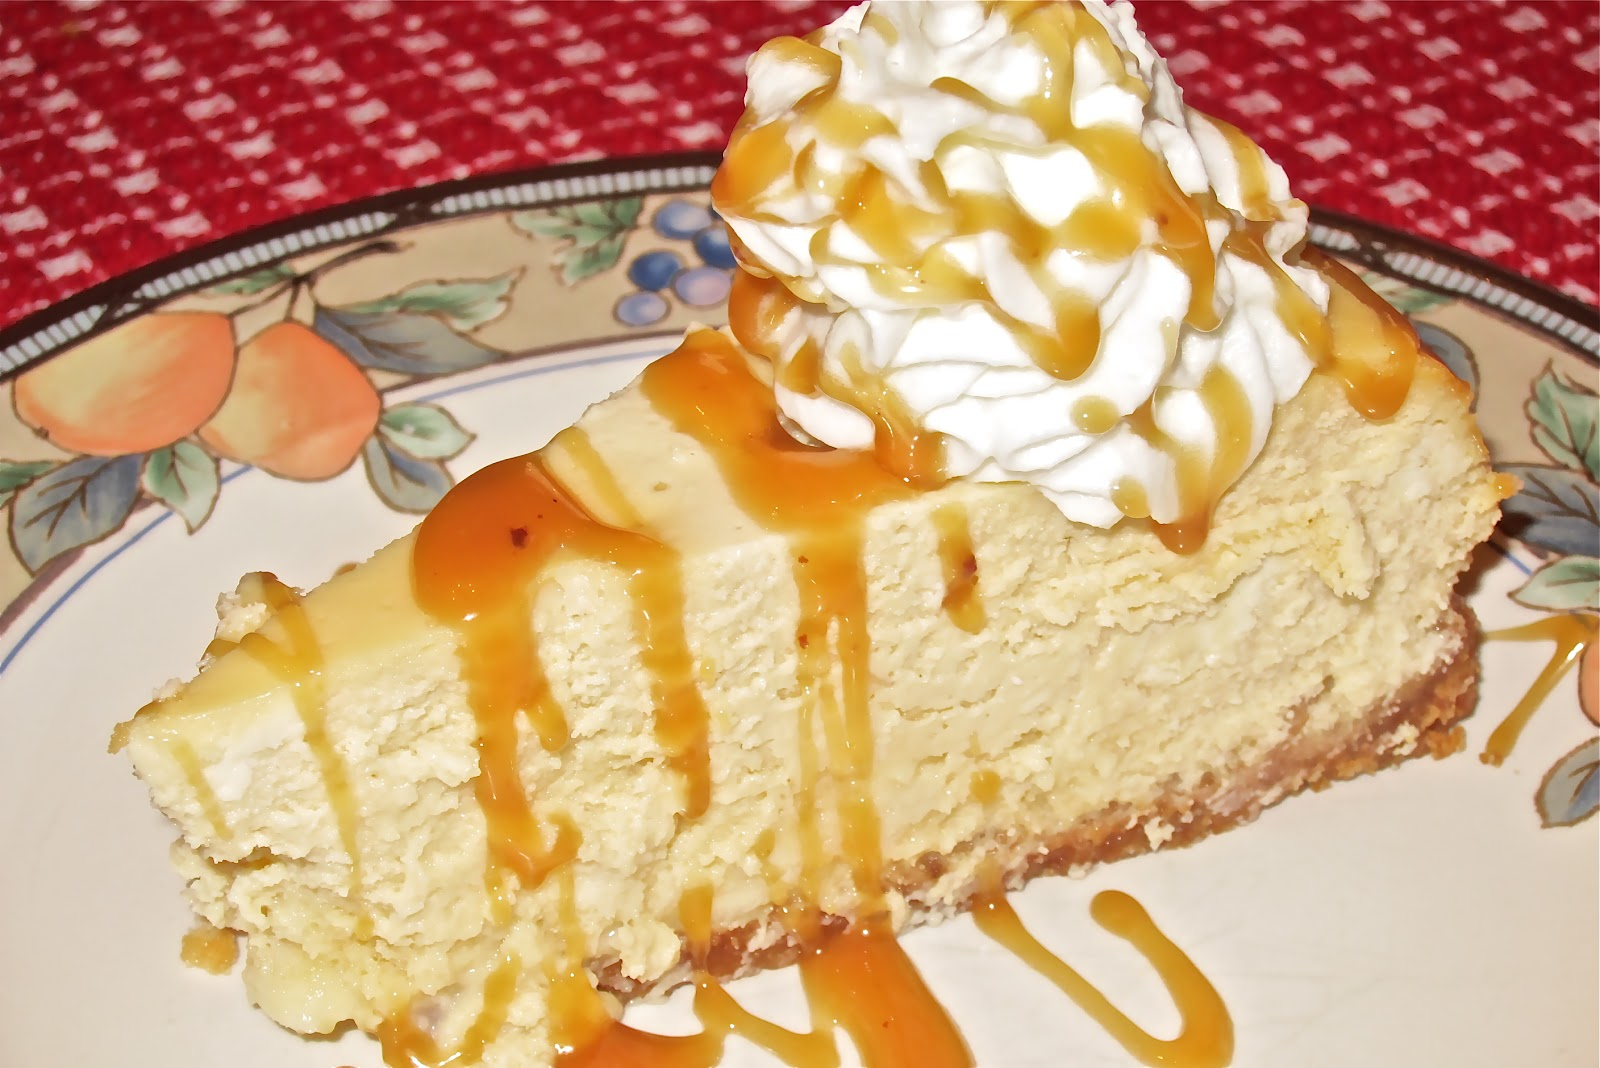 Serve and enjoy the Caramel Macchiato Cheesecake Recipe Dessert